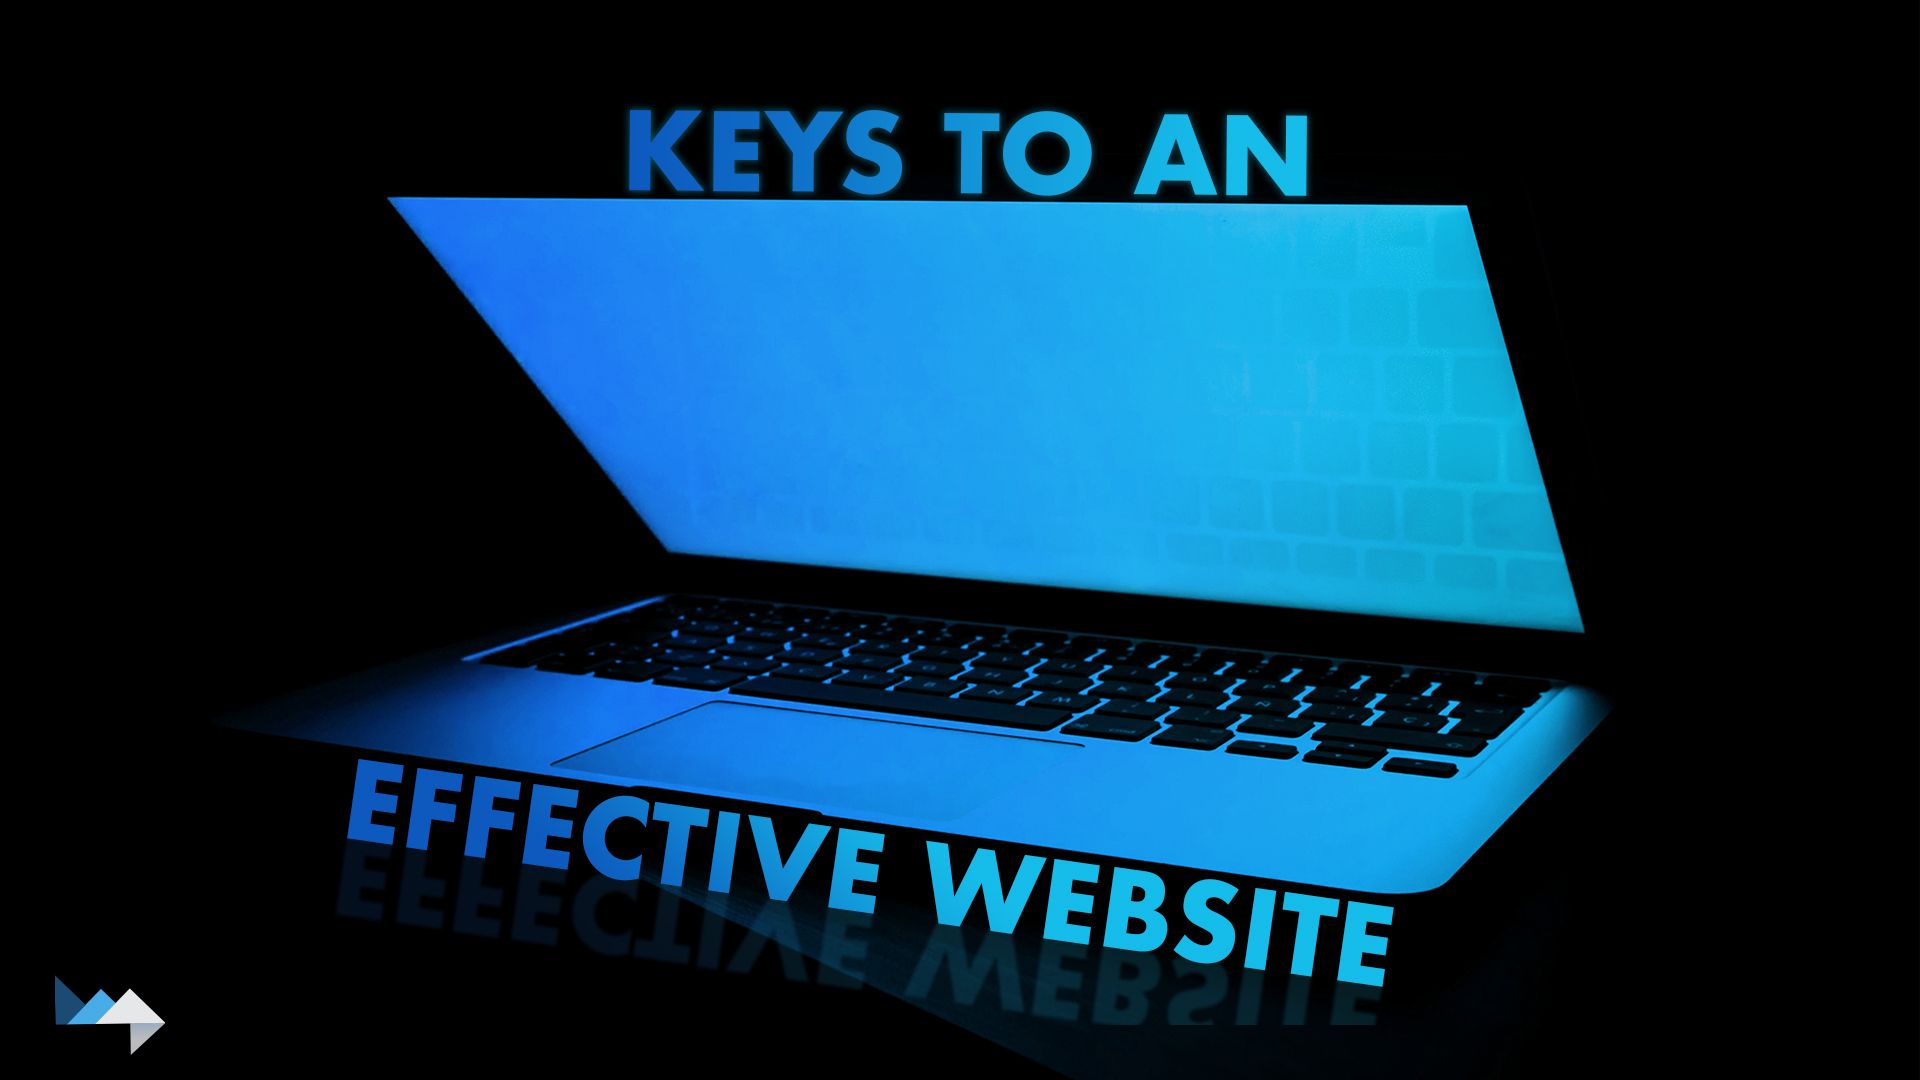 Keys to an Effective Website